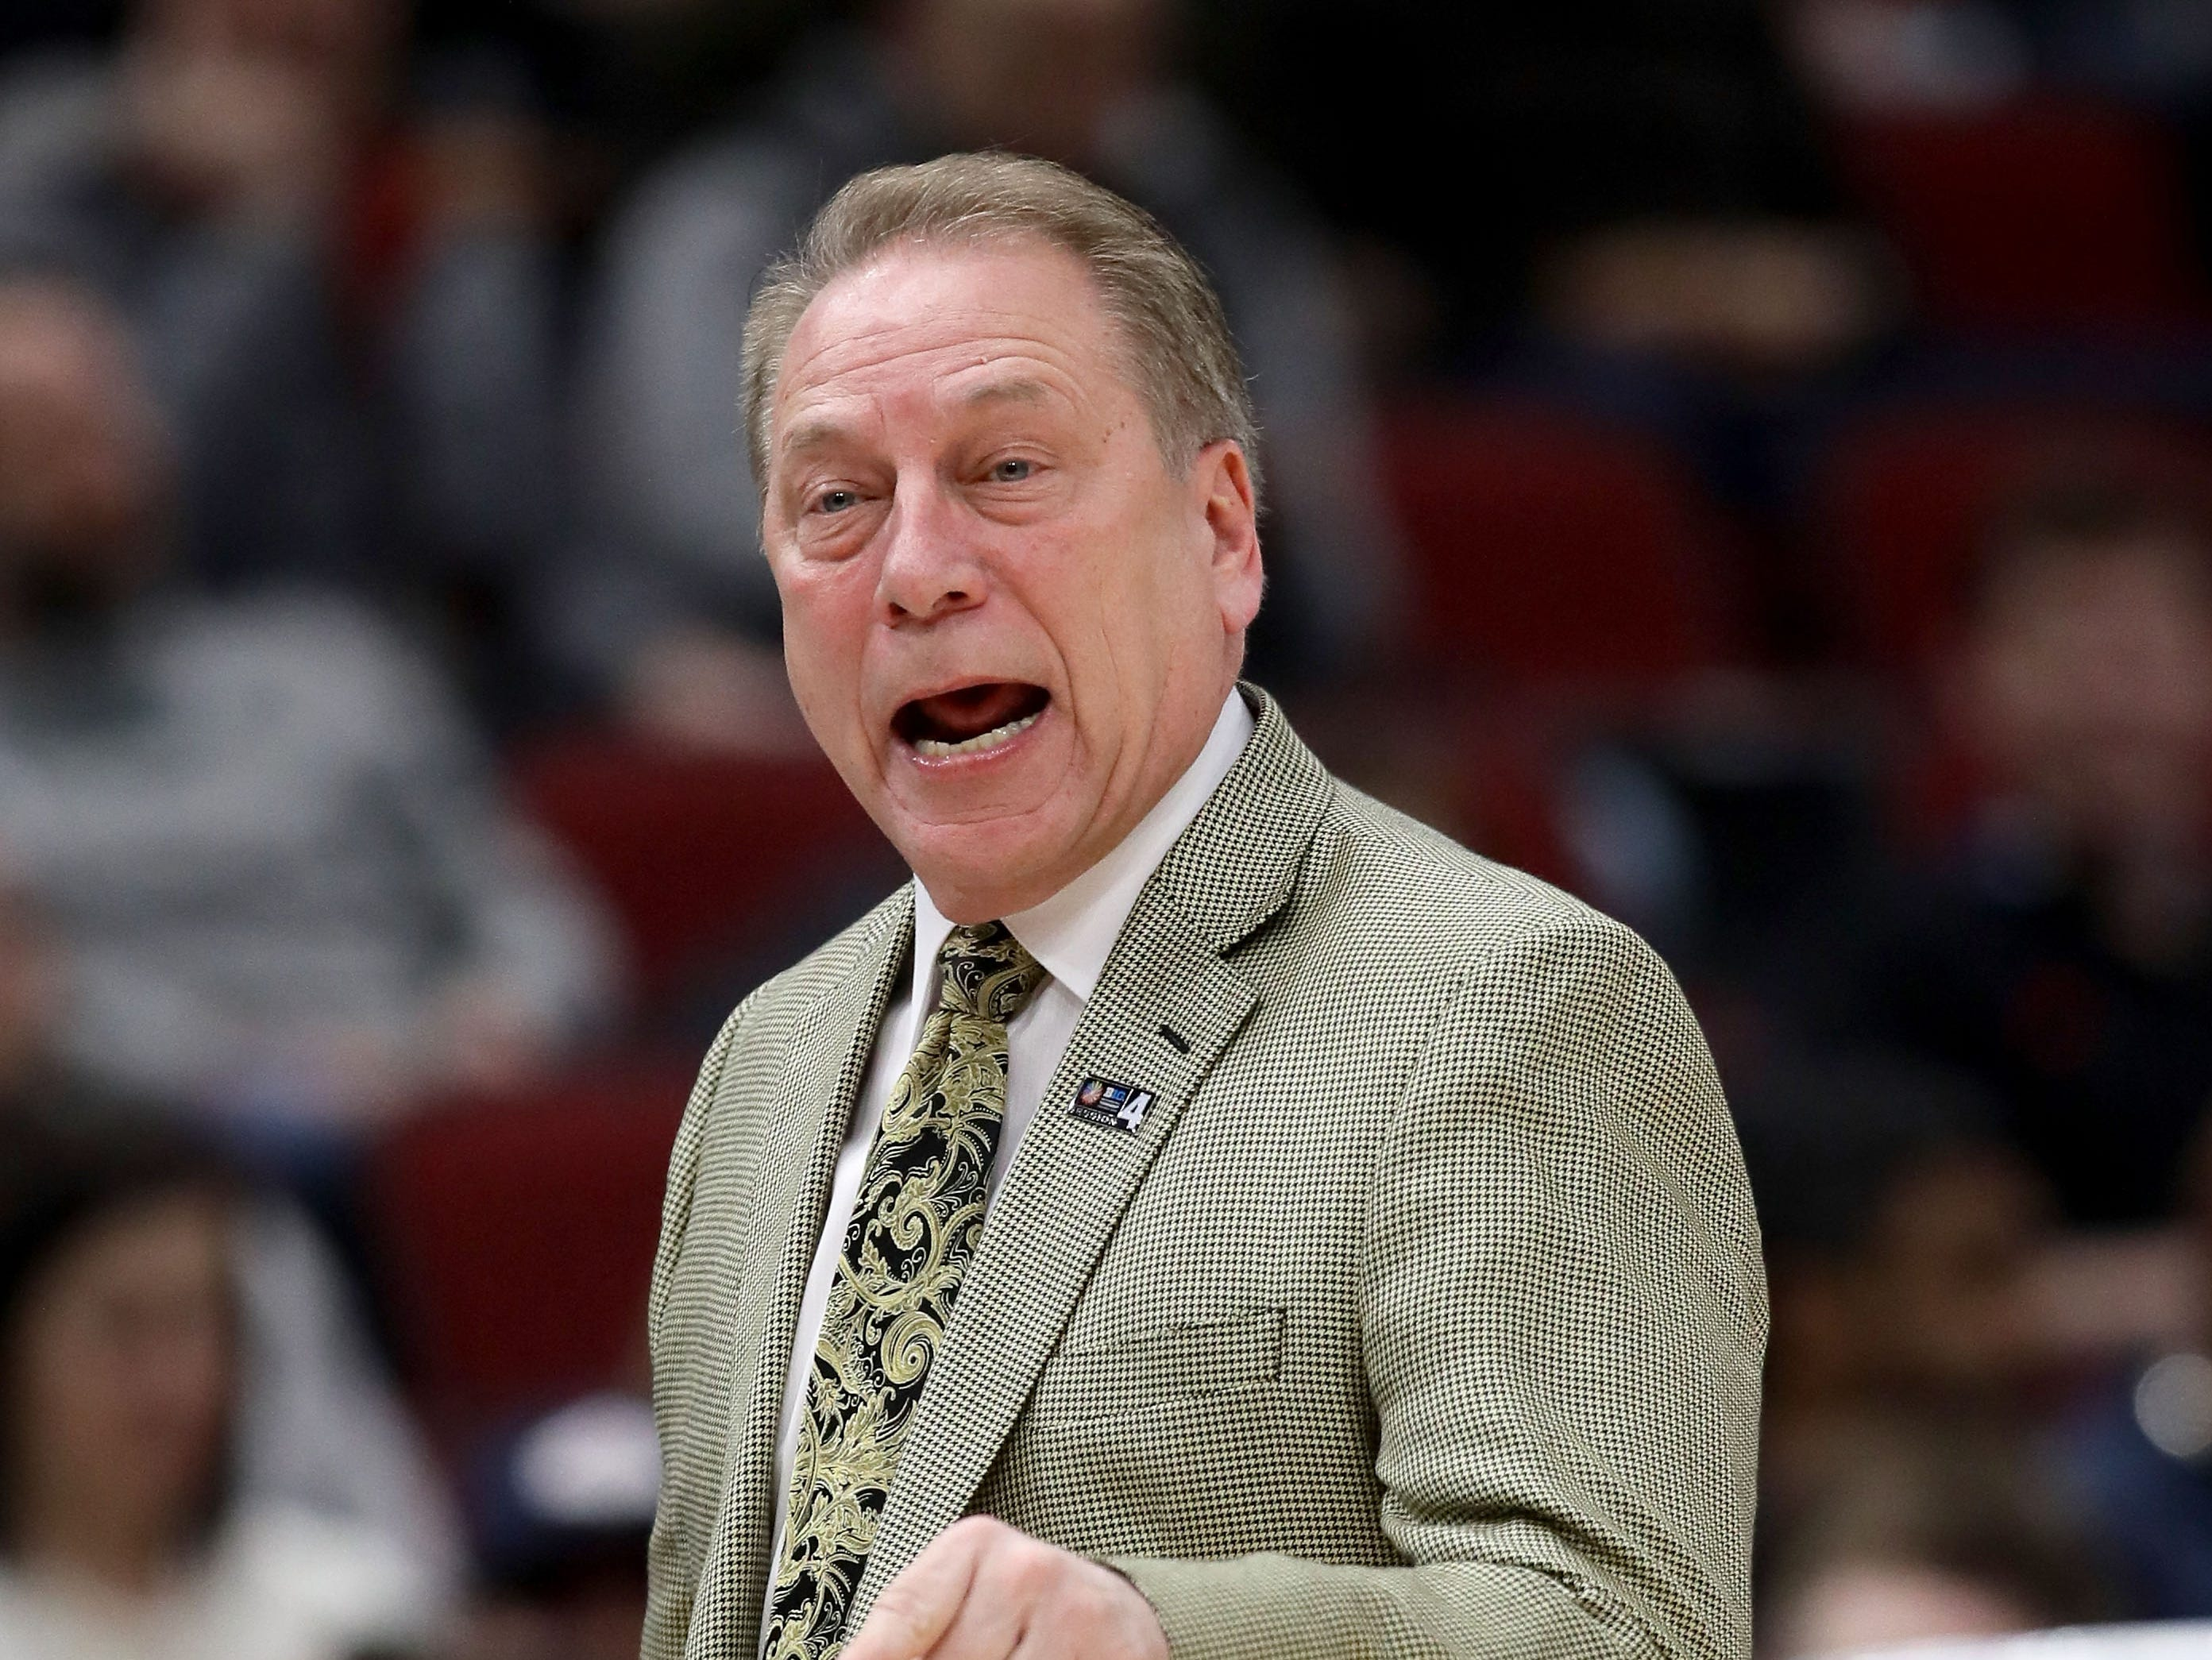 Head coach Tom Izzo of the Michigan State Spartans calls out instructions in the first half against the Ohio State Buckeyes during the quarterfinals of the Big Ten Basketball Tournament at the United Center on March 15, 2019 in Chicago, Illinois.